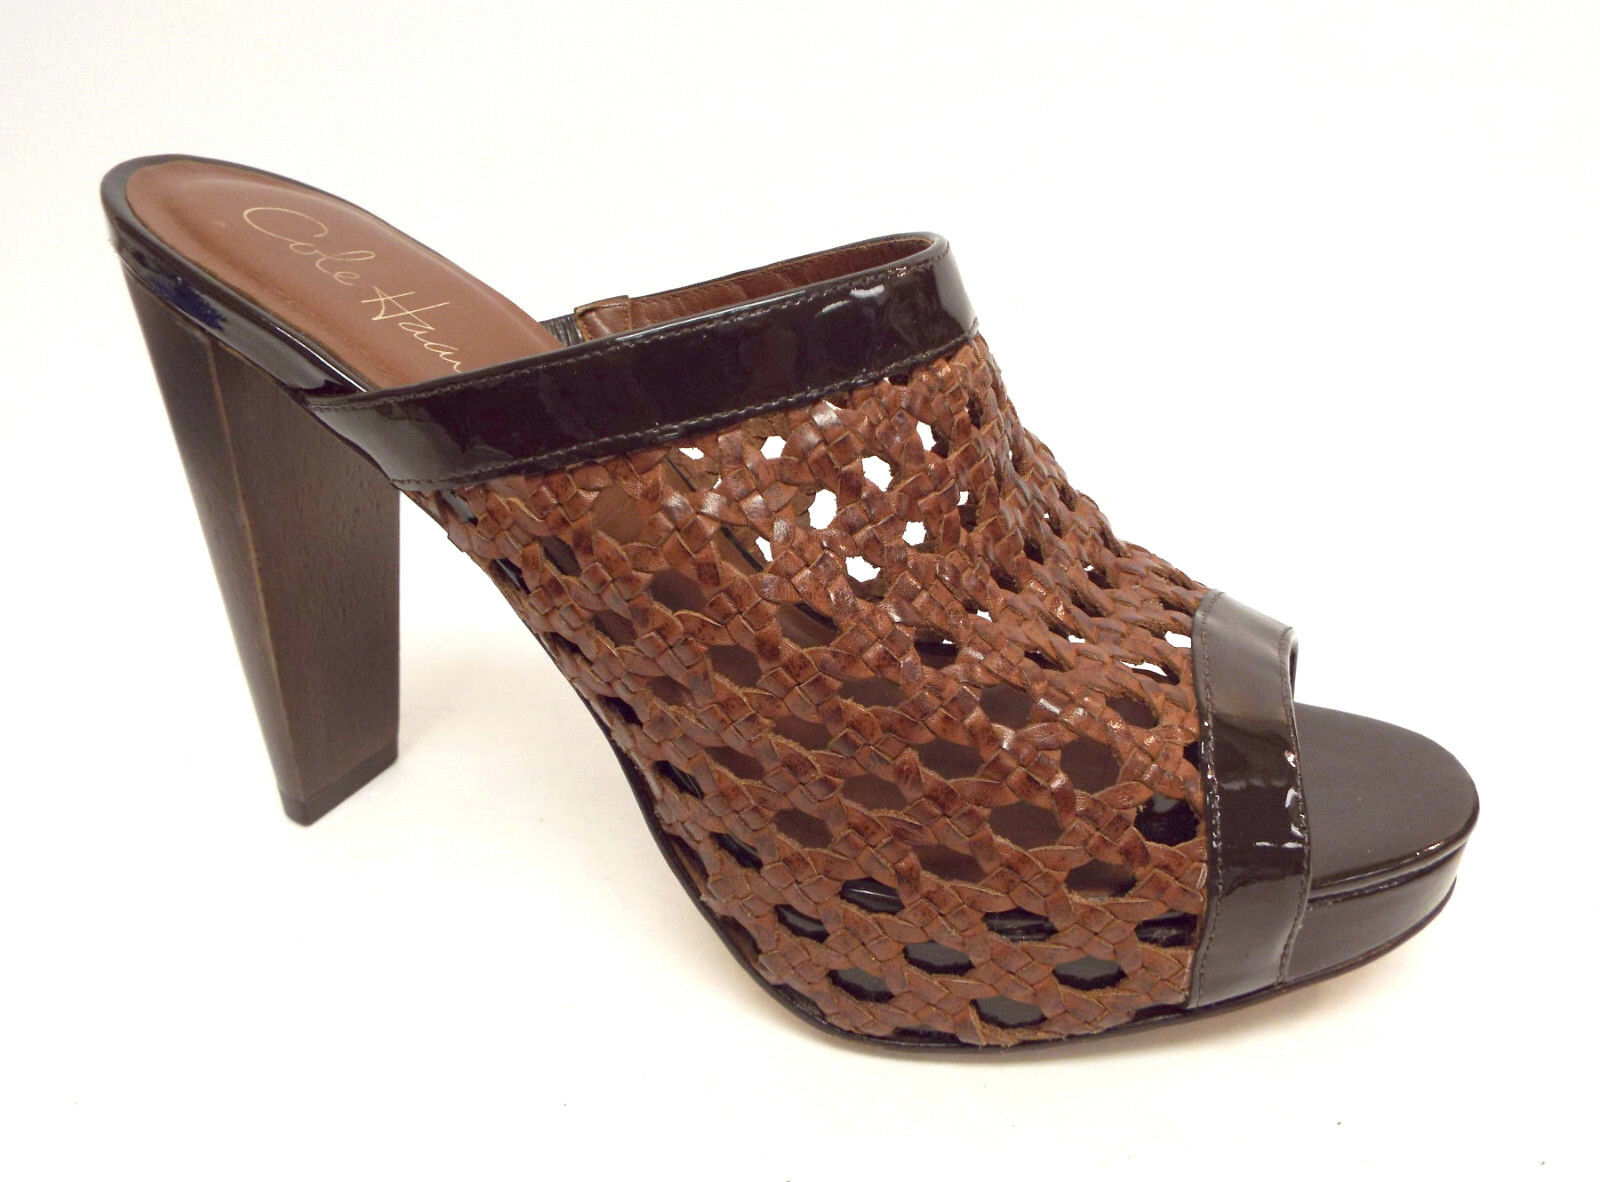 COLE HAAN Brown Size 9.5 Woven Leather Slide Sandals Heels 9 1 2 Pumps shoes